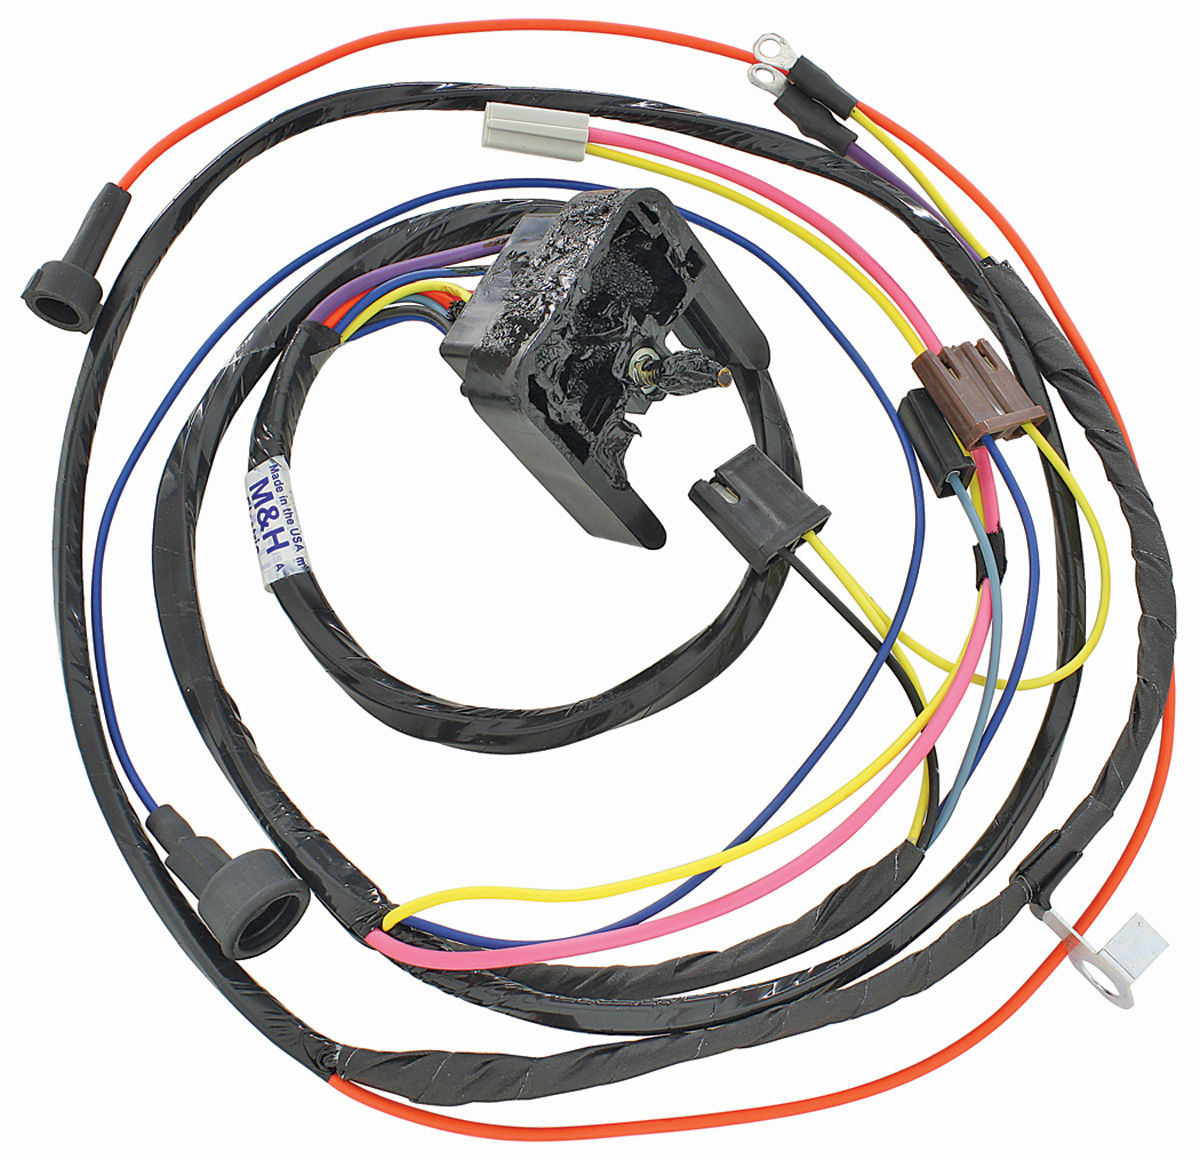 38947 lrg?v=102520130818 m&h 1968 69 chevelle engine harness 396 hei w warning lights 1984 El Camino Wiring-Diagram at panicattacktreatment.co